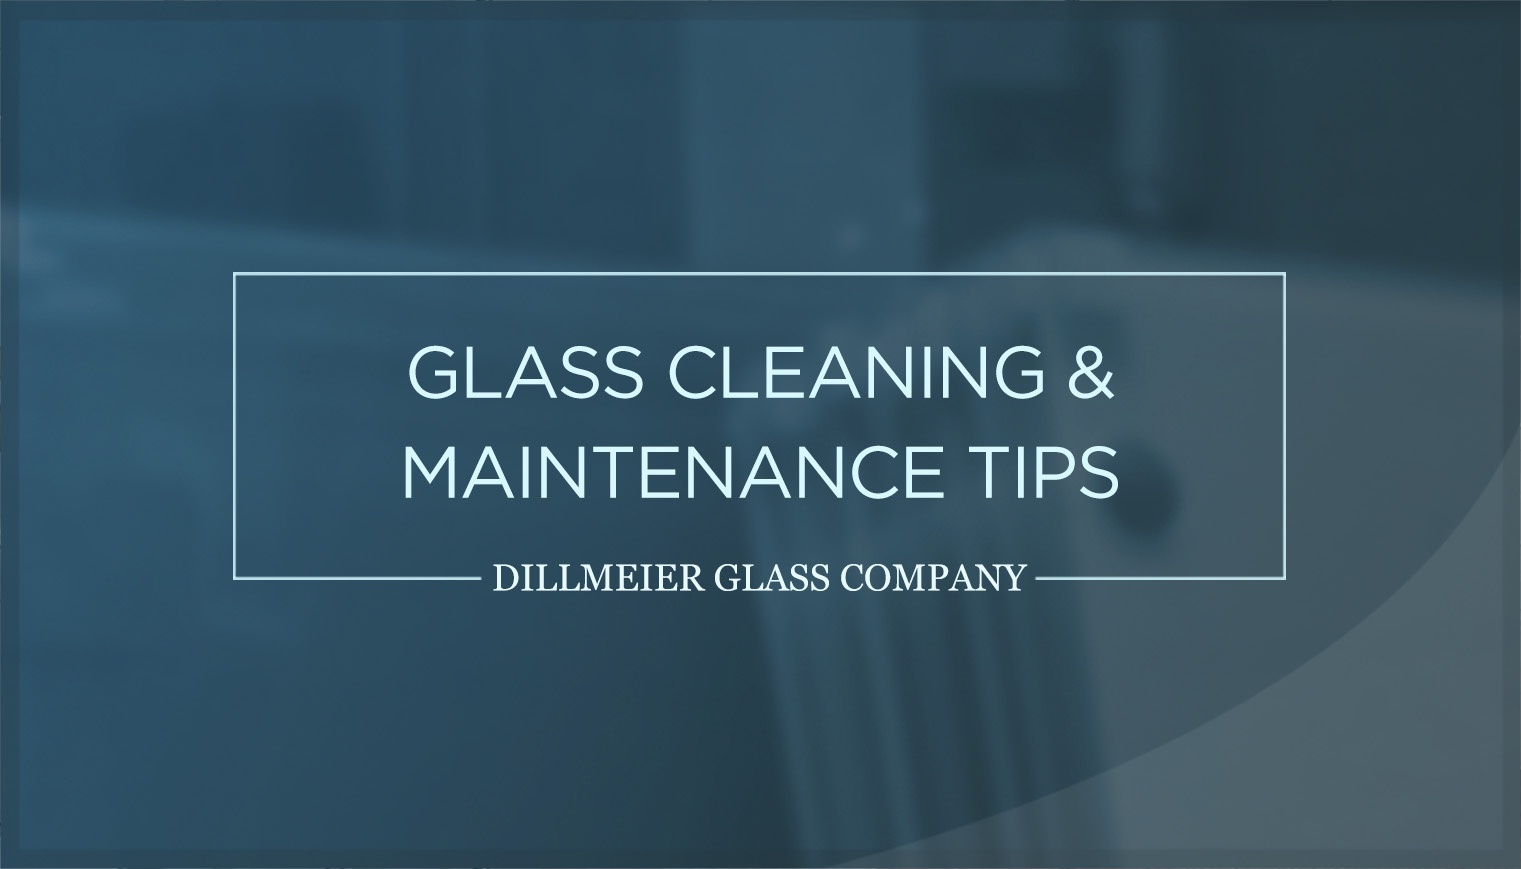 glass cleaning and maintenance tips